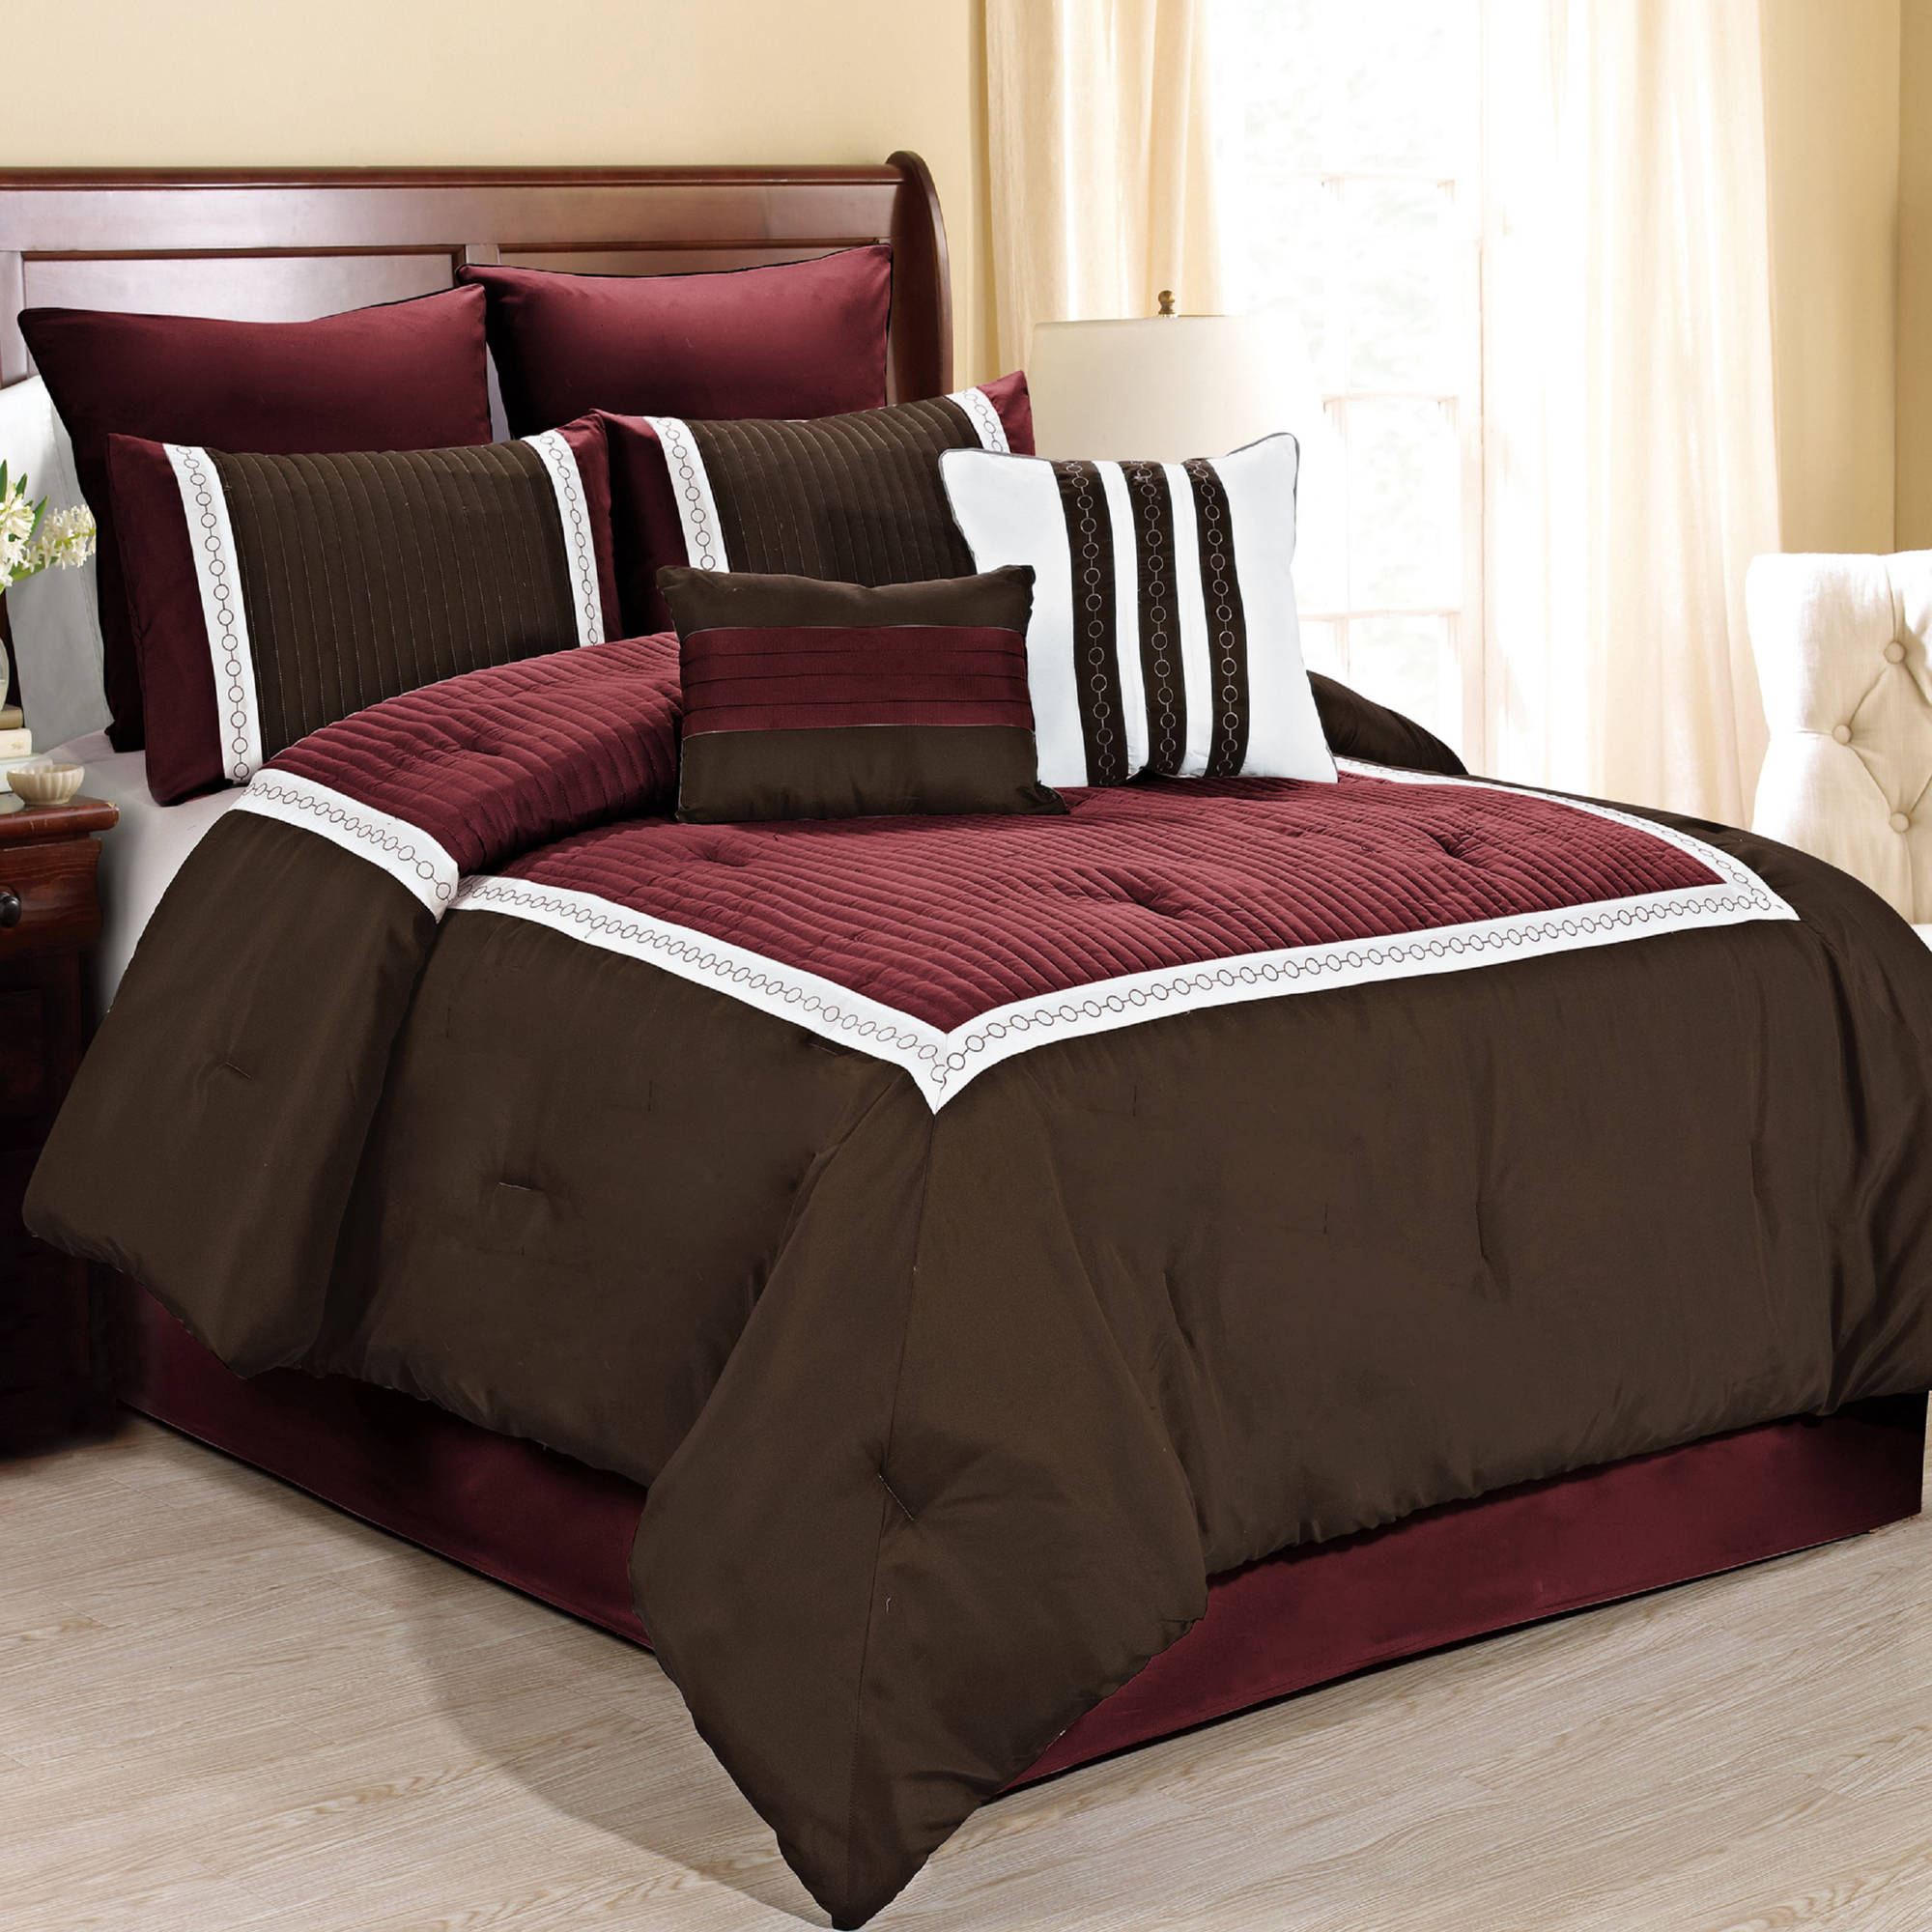 Fashion Street Giornali 8-Piece Bedding Comforter Set